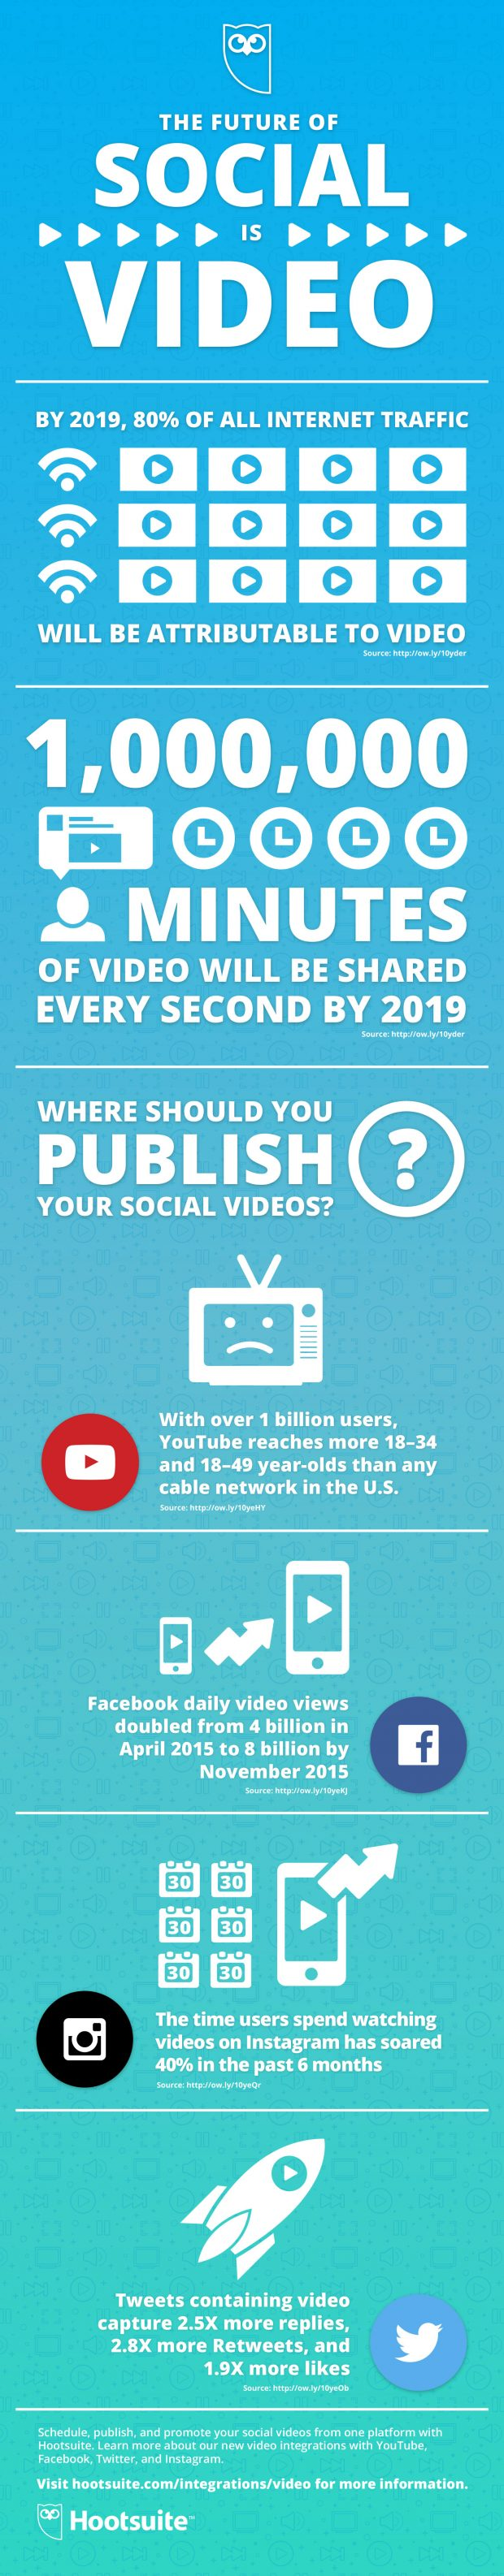 Social Video Infographic | Hootsuite Blog